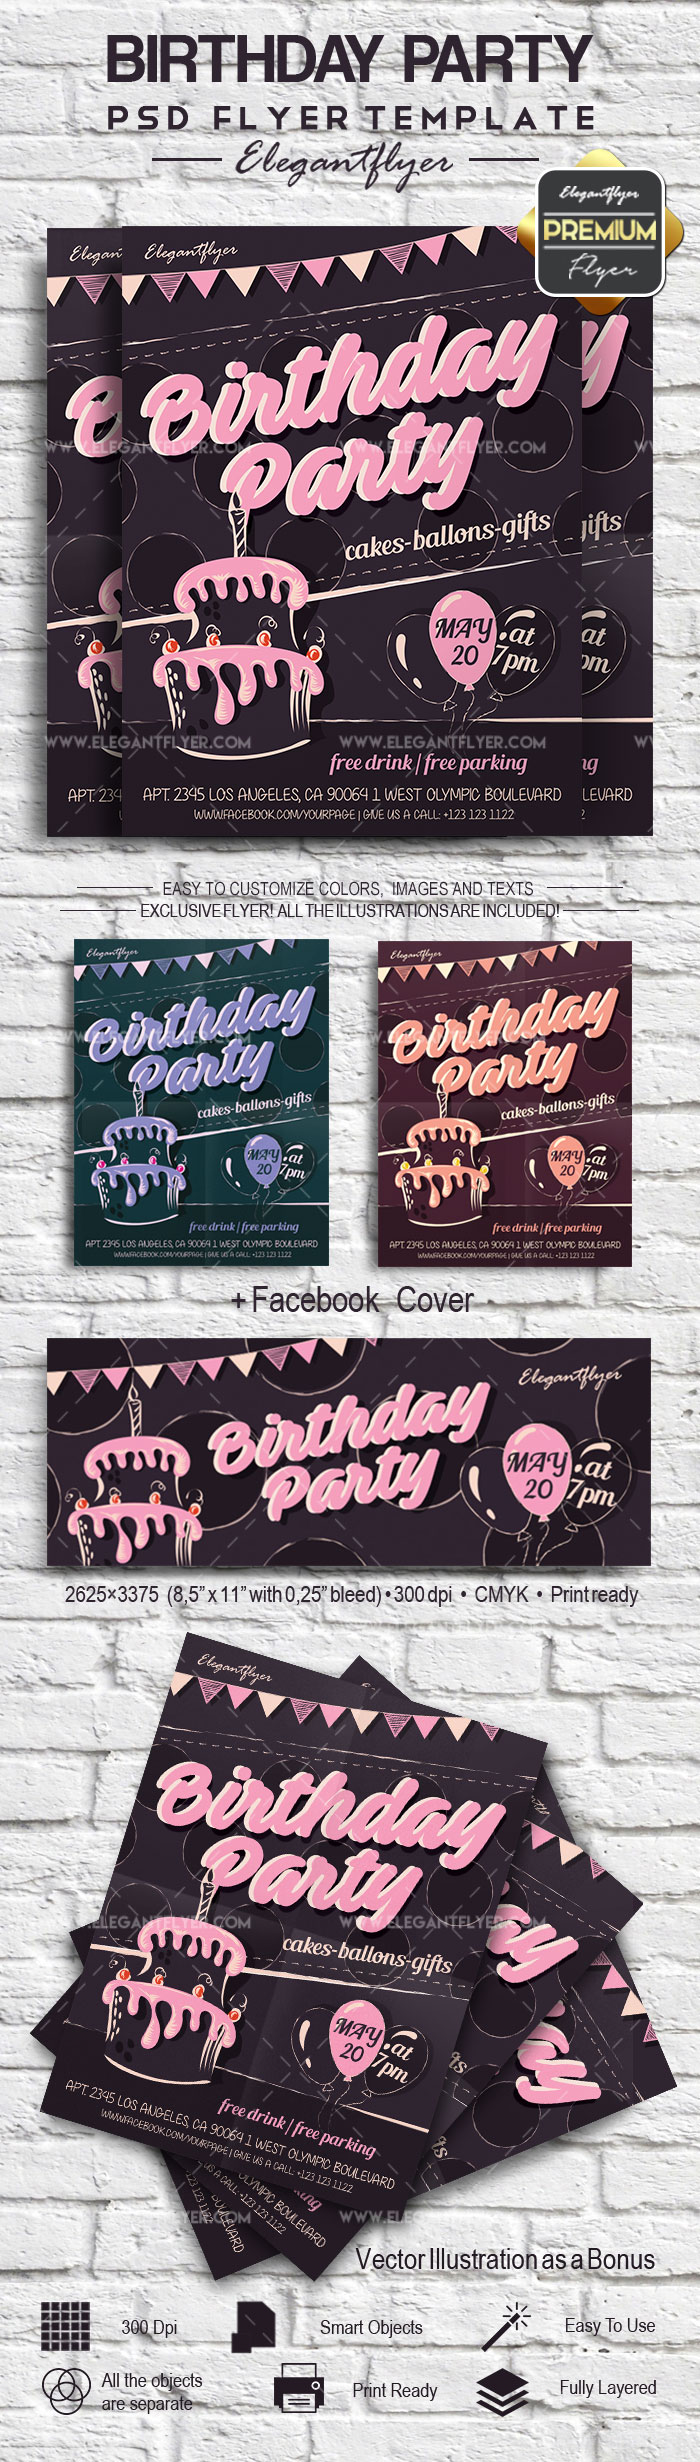 Flyer for Birthday Party Template